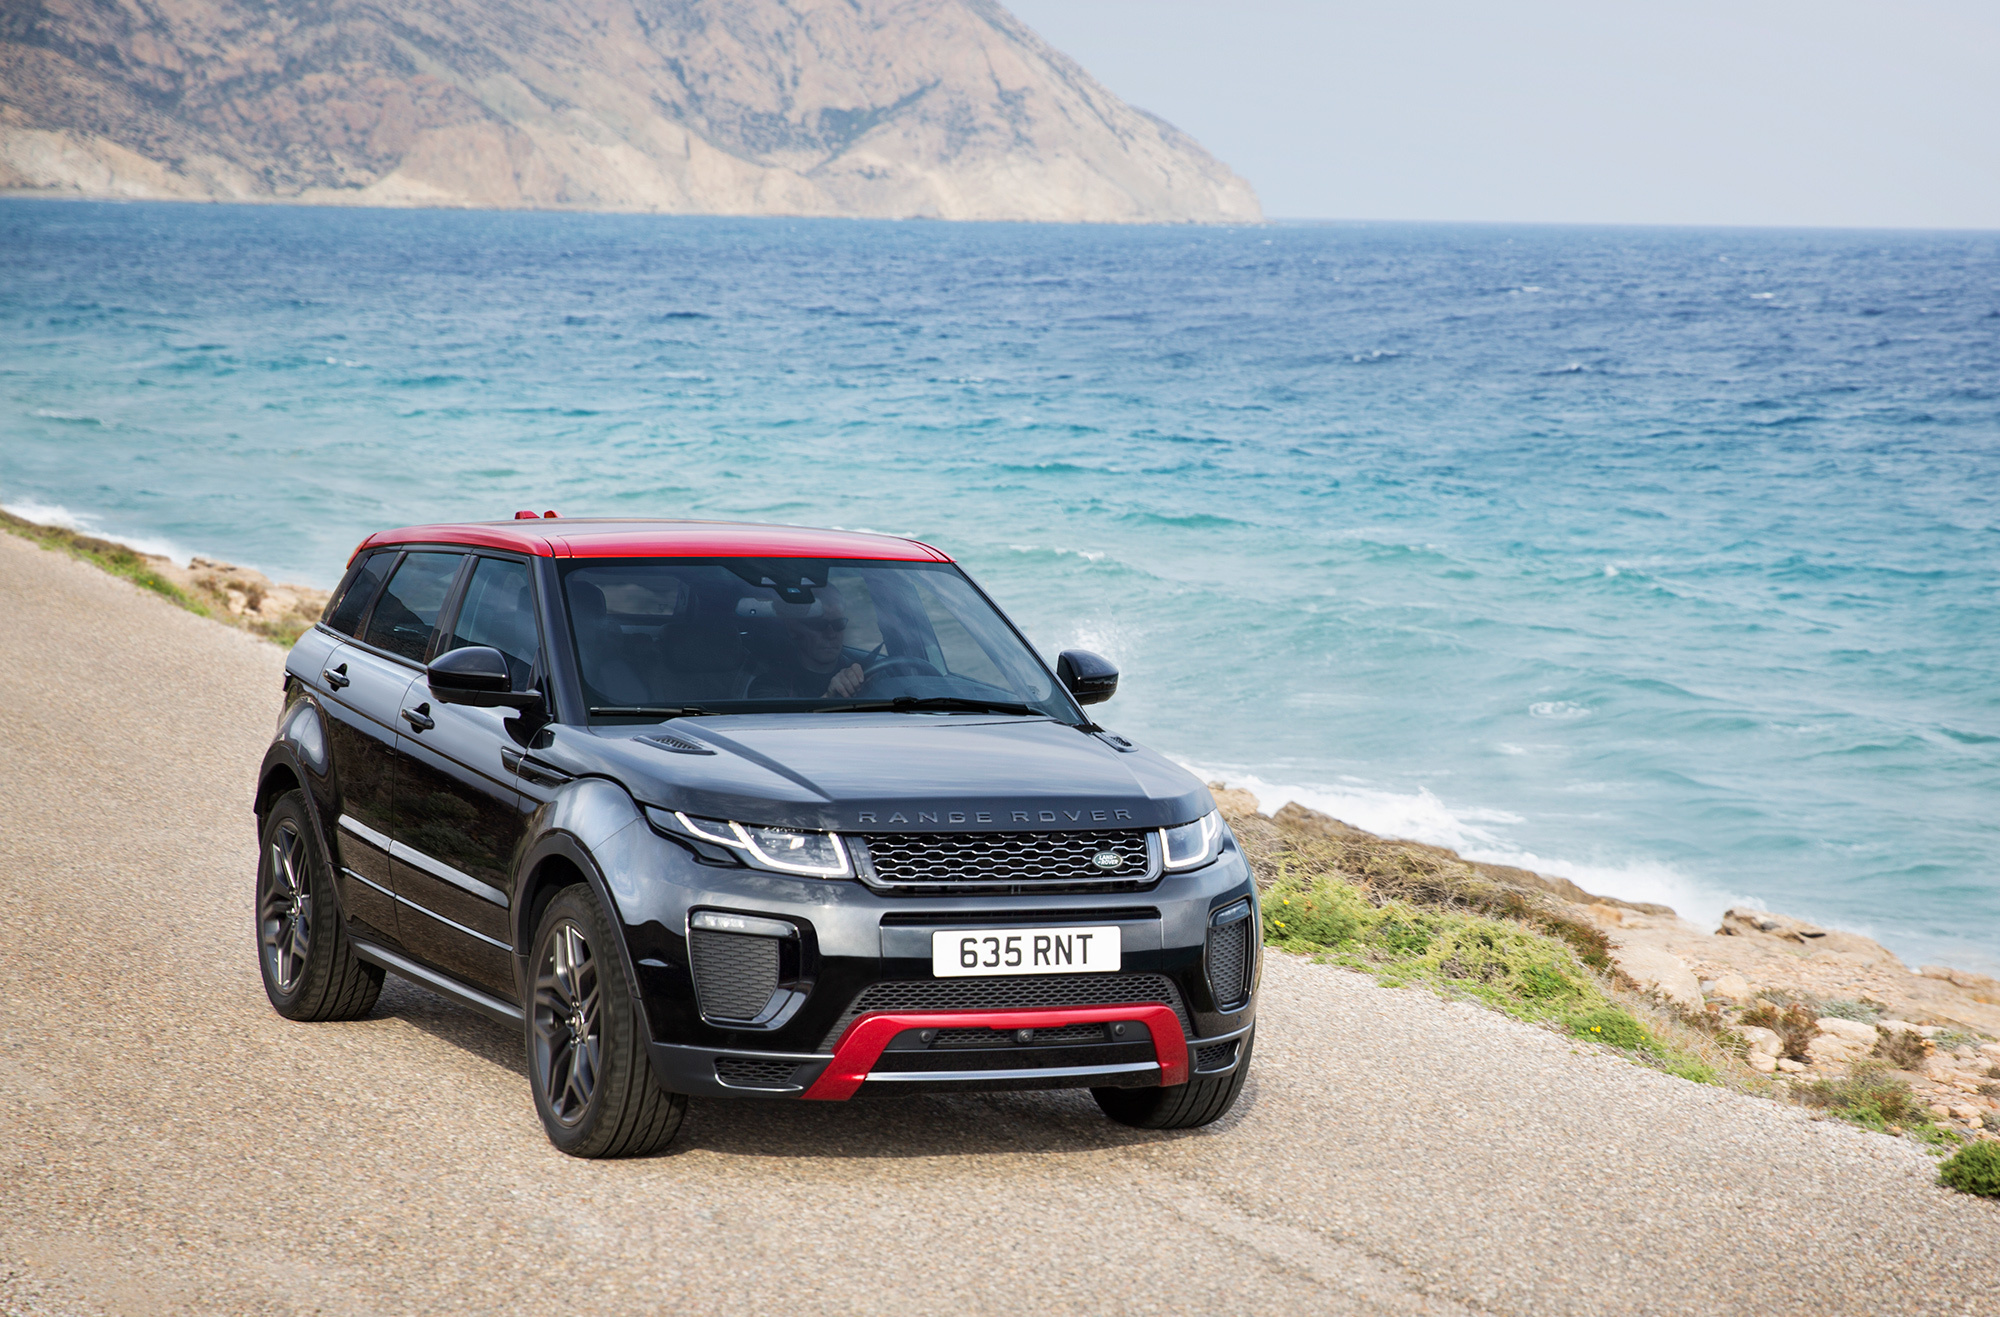 range rover evoque 2017 wallpapers images photos pictures backgrounds. Black Bedroom Furniture Sets. Home Design Ideas